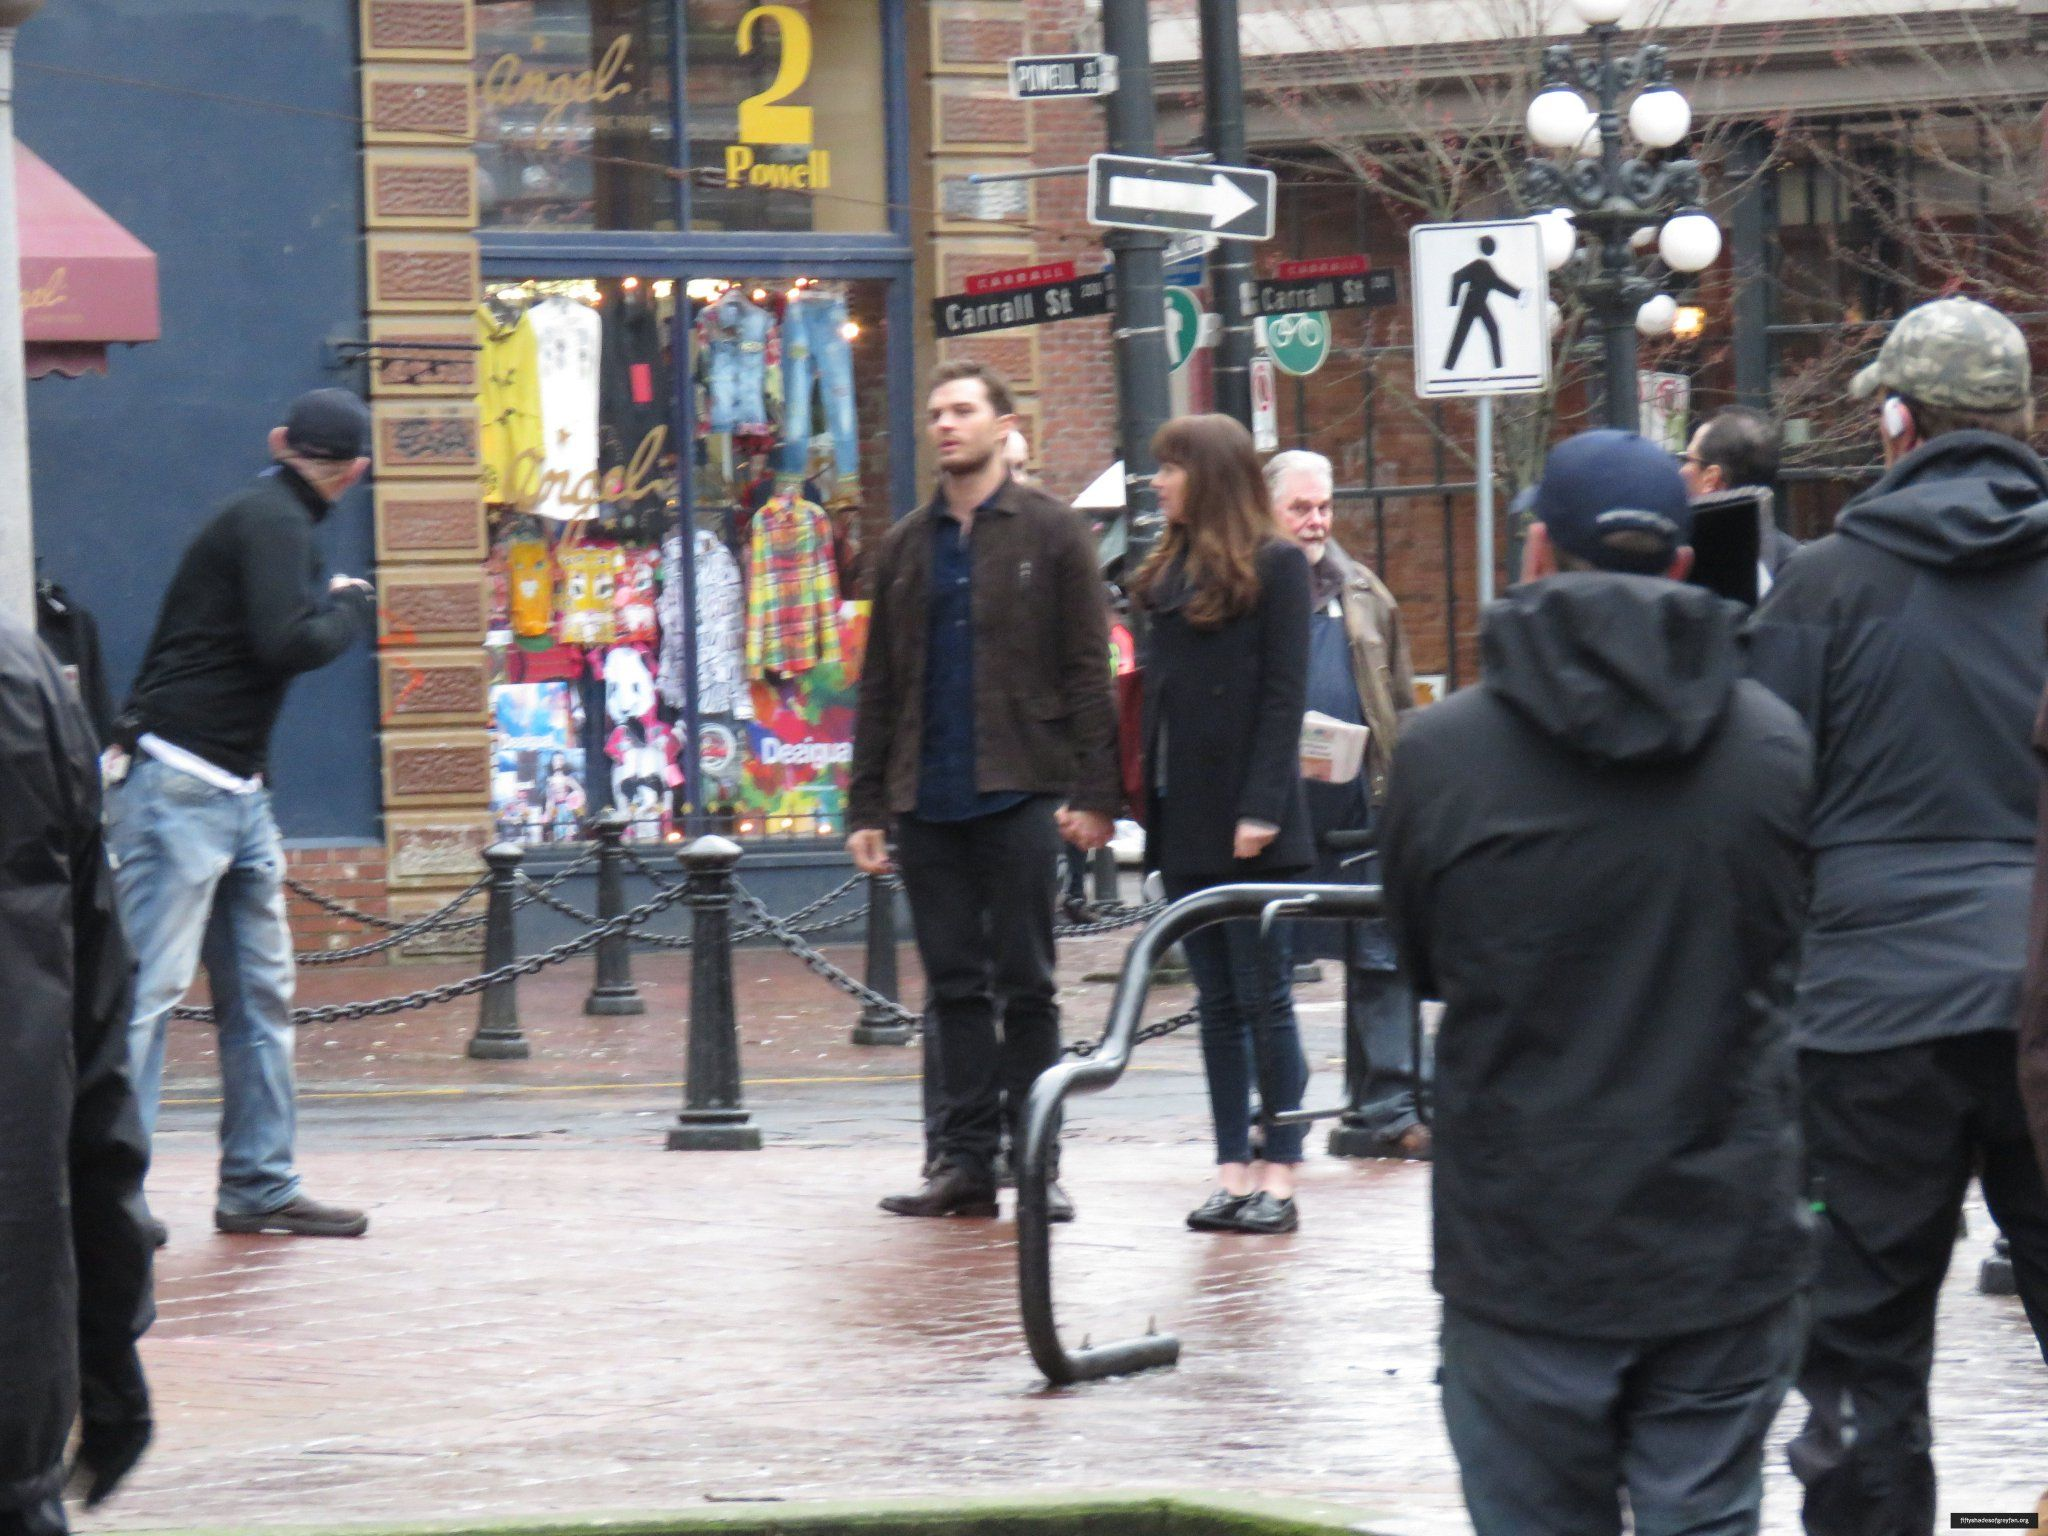 """Fifty Shades Darker on Twitter: """"+ 300 New Unseen HQ Pics of Jamie and Dakota on #FiftyShadesDarker Set in March!  https://t.co/3bSBNaPyTP https://t.co/aV2bx1oi35"""""""